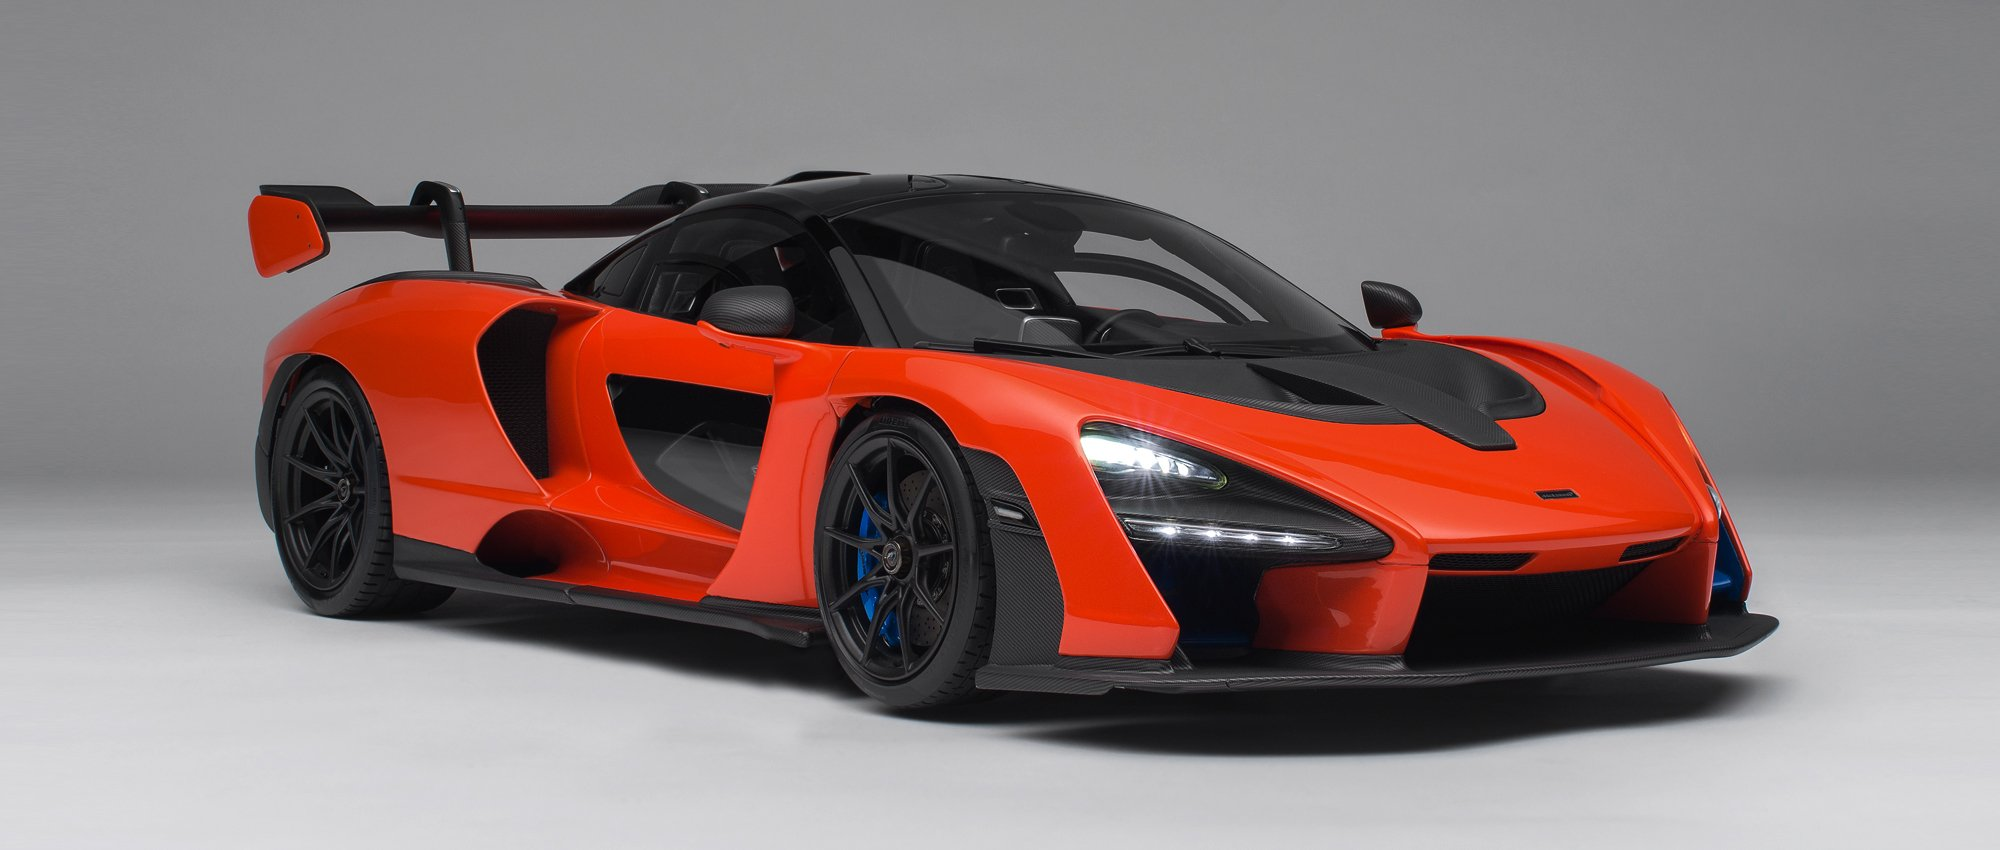 McLaren Senna with Lighting and Electric Doors